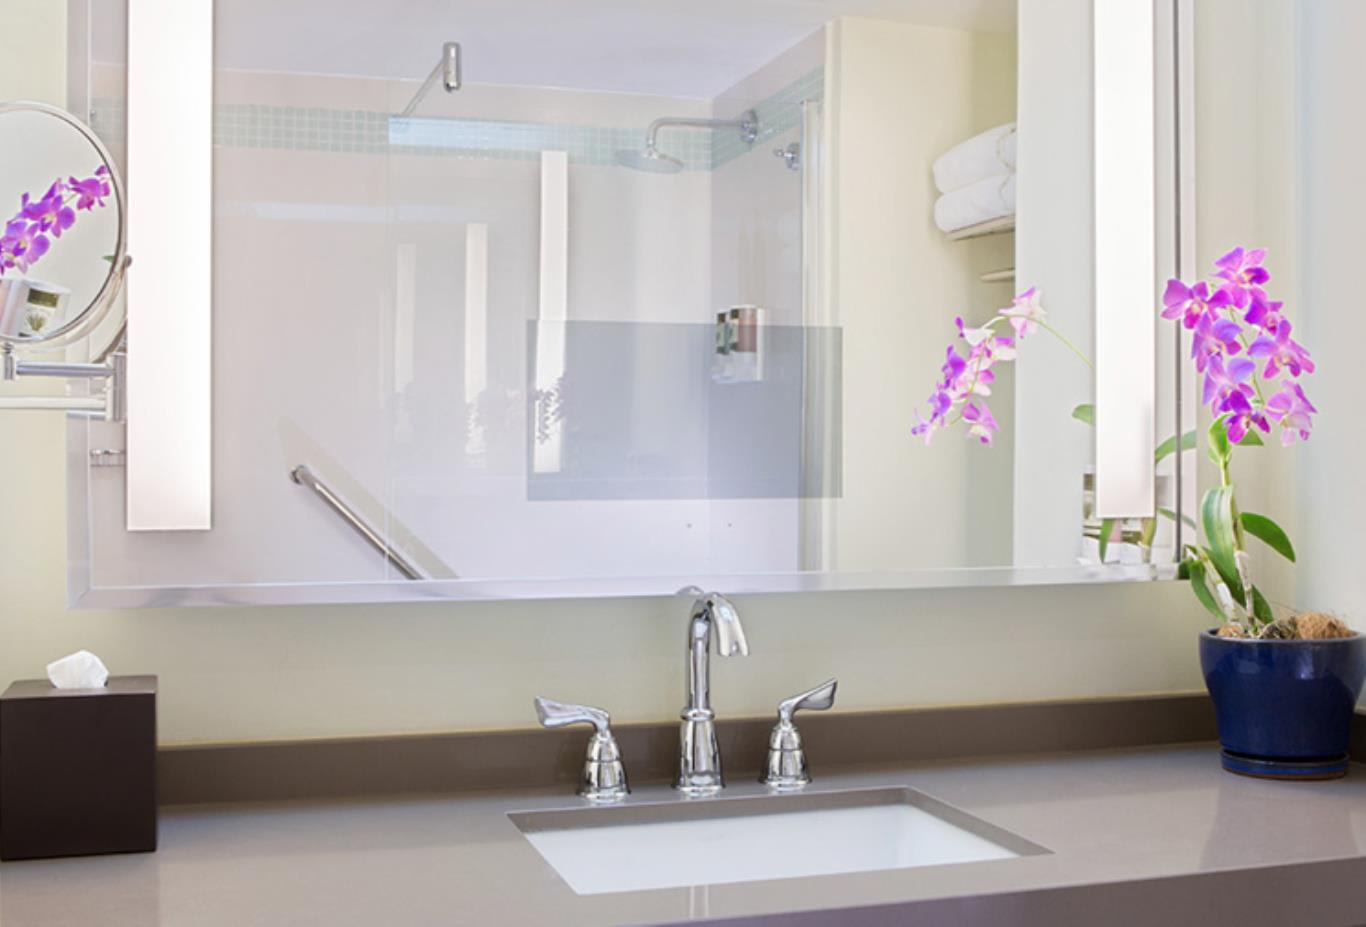 Standard - Superior Room bathroom